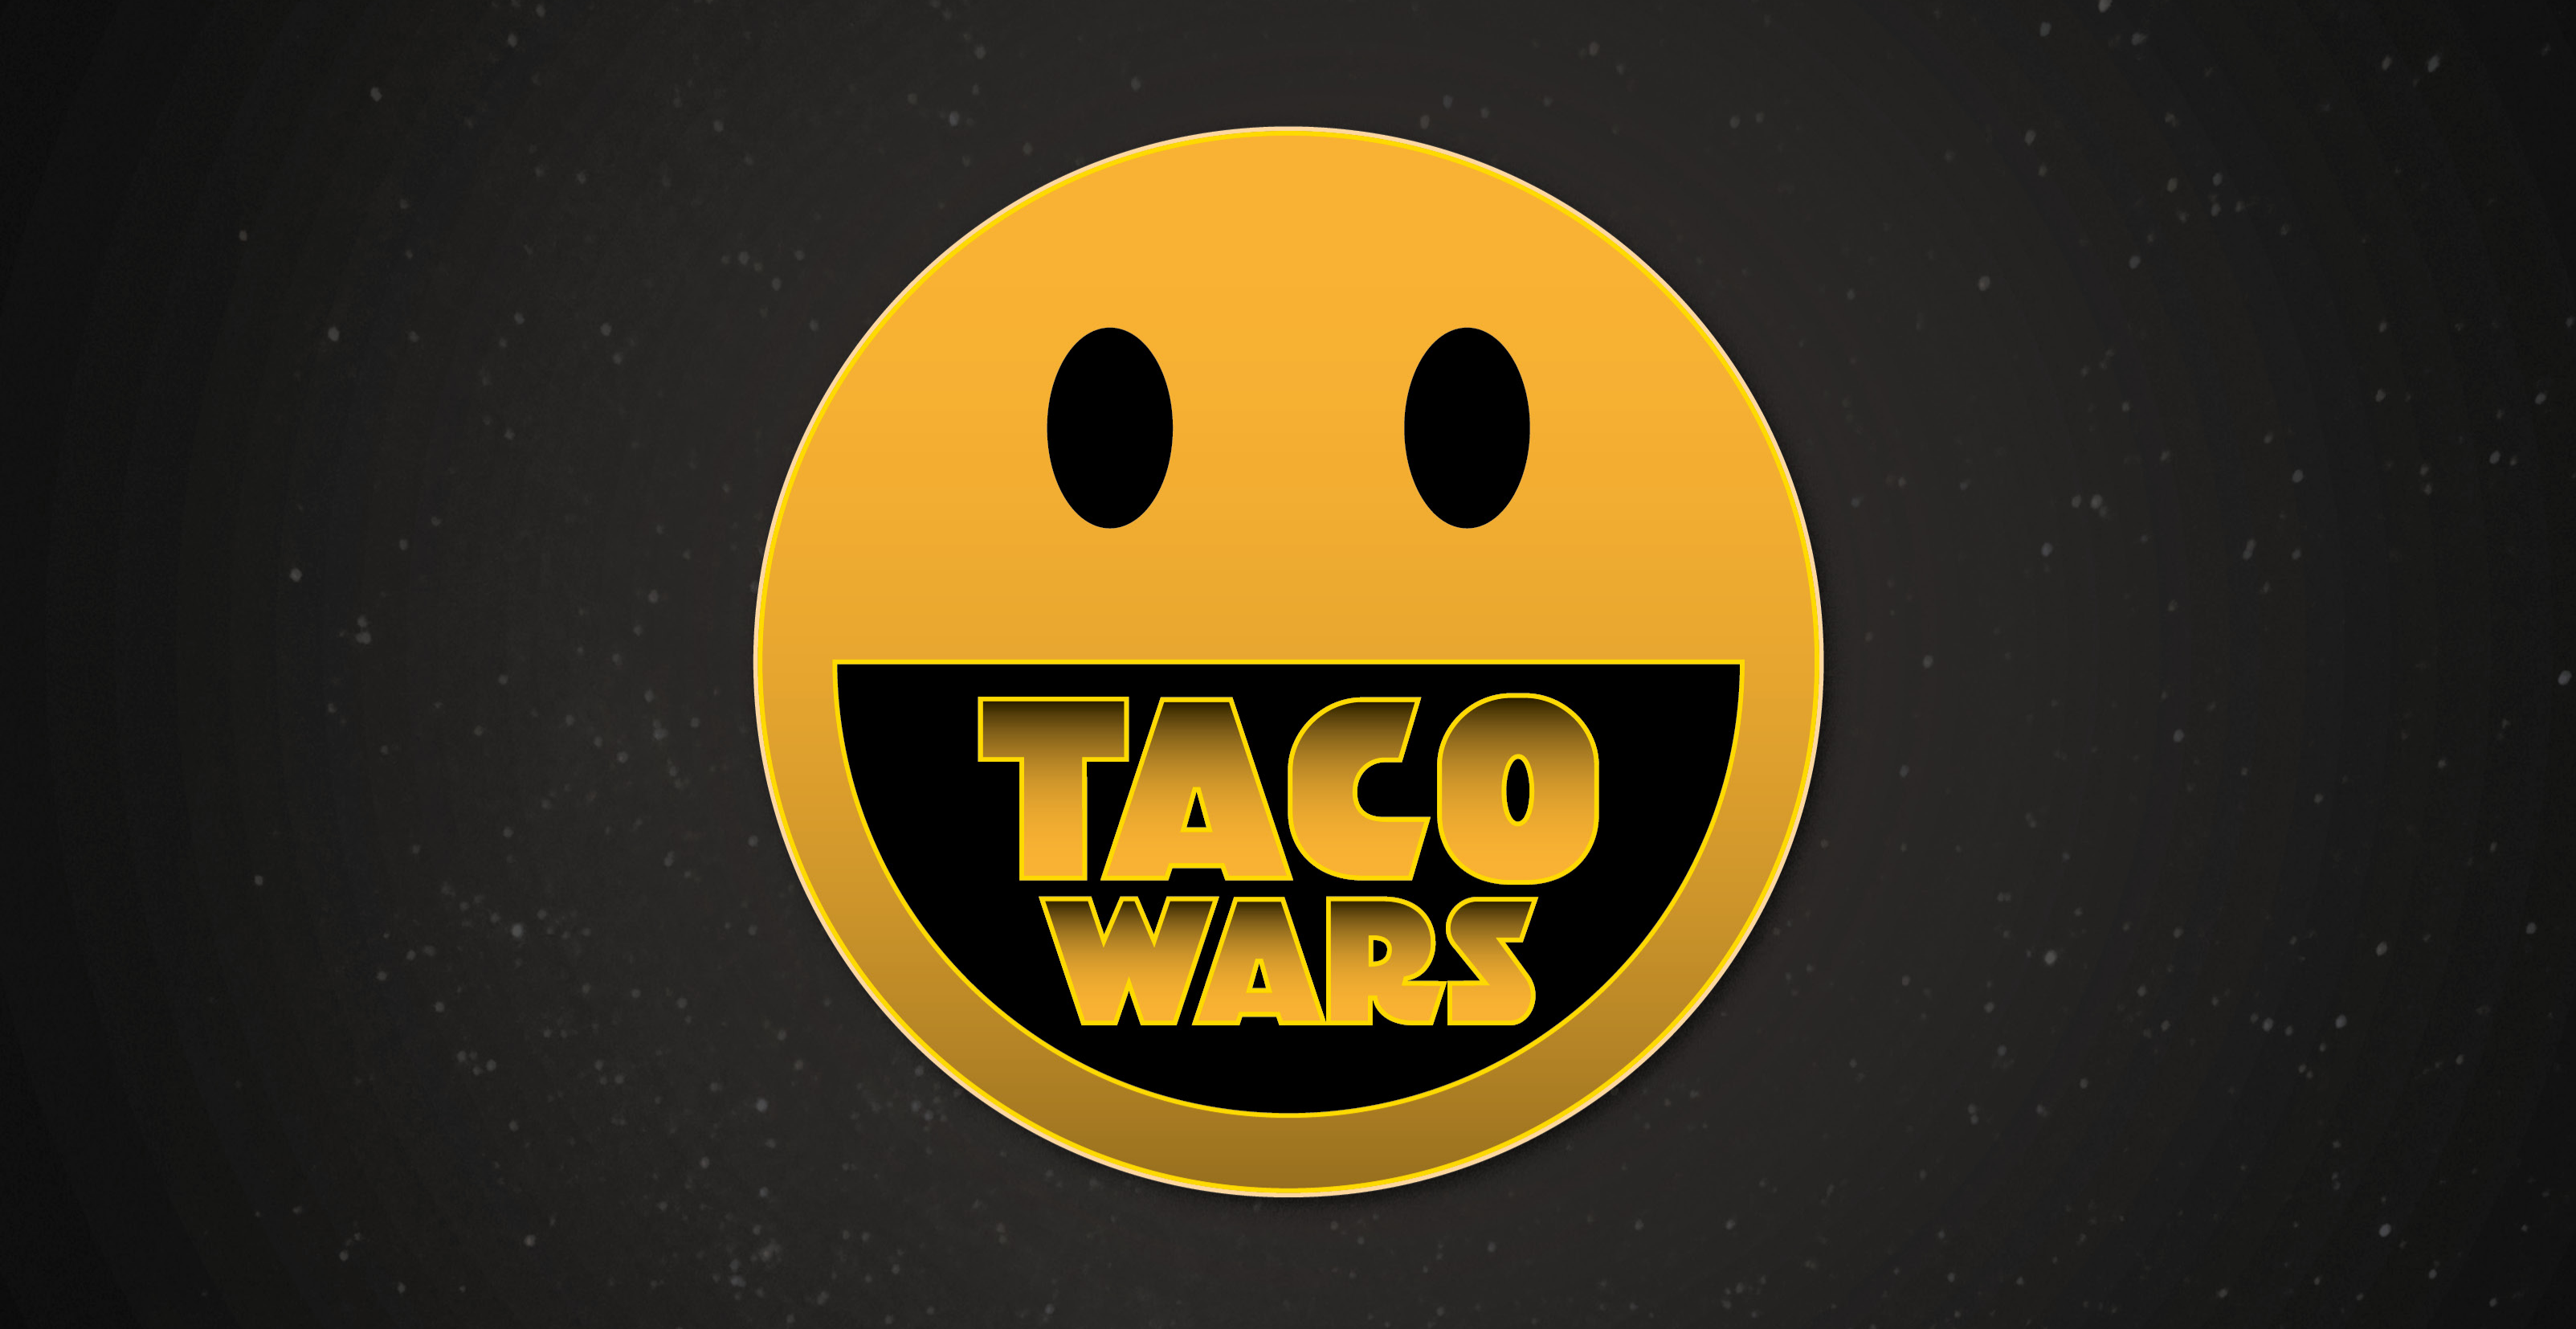 Taco Wars, in association with Patrón and Corona